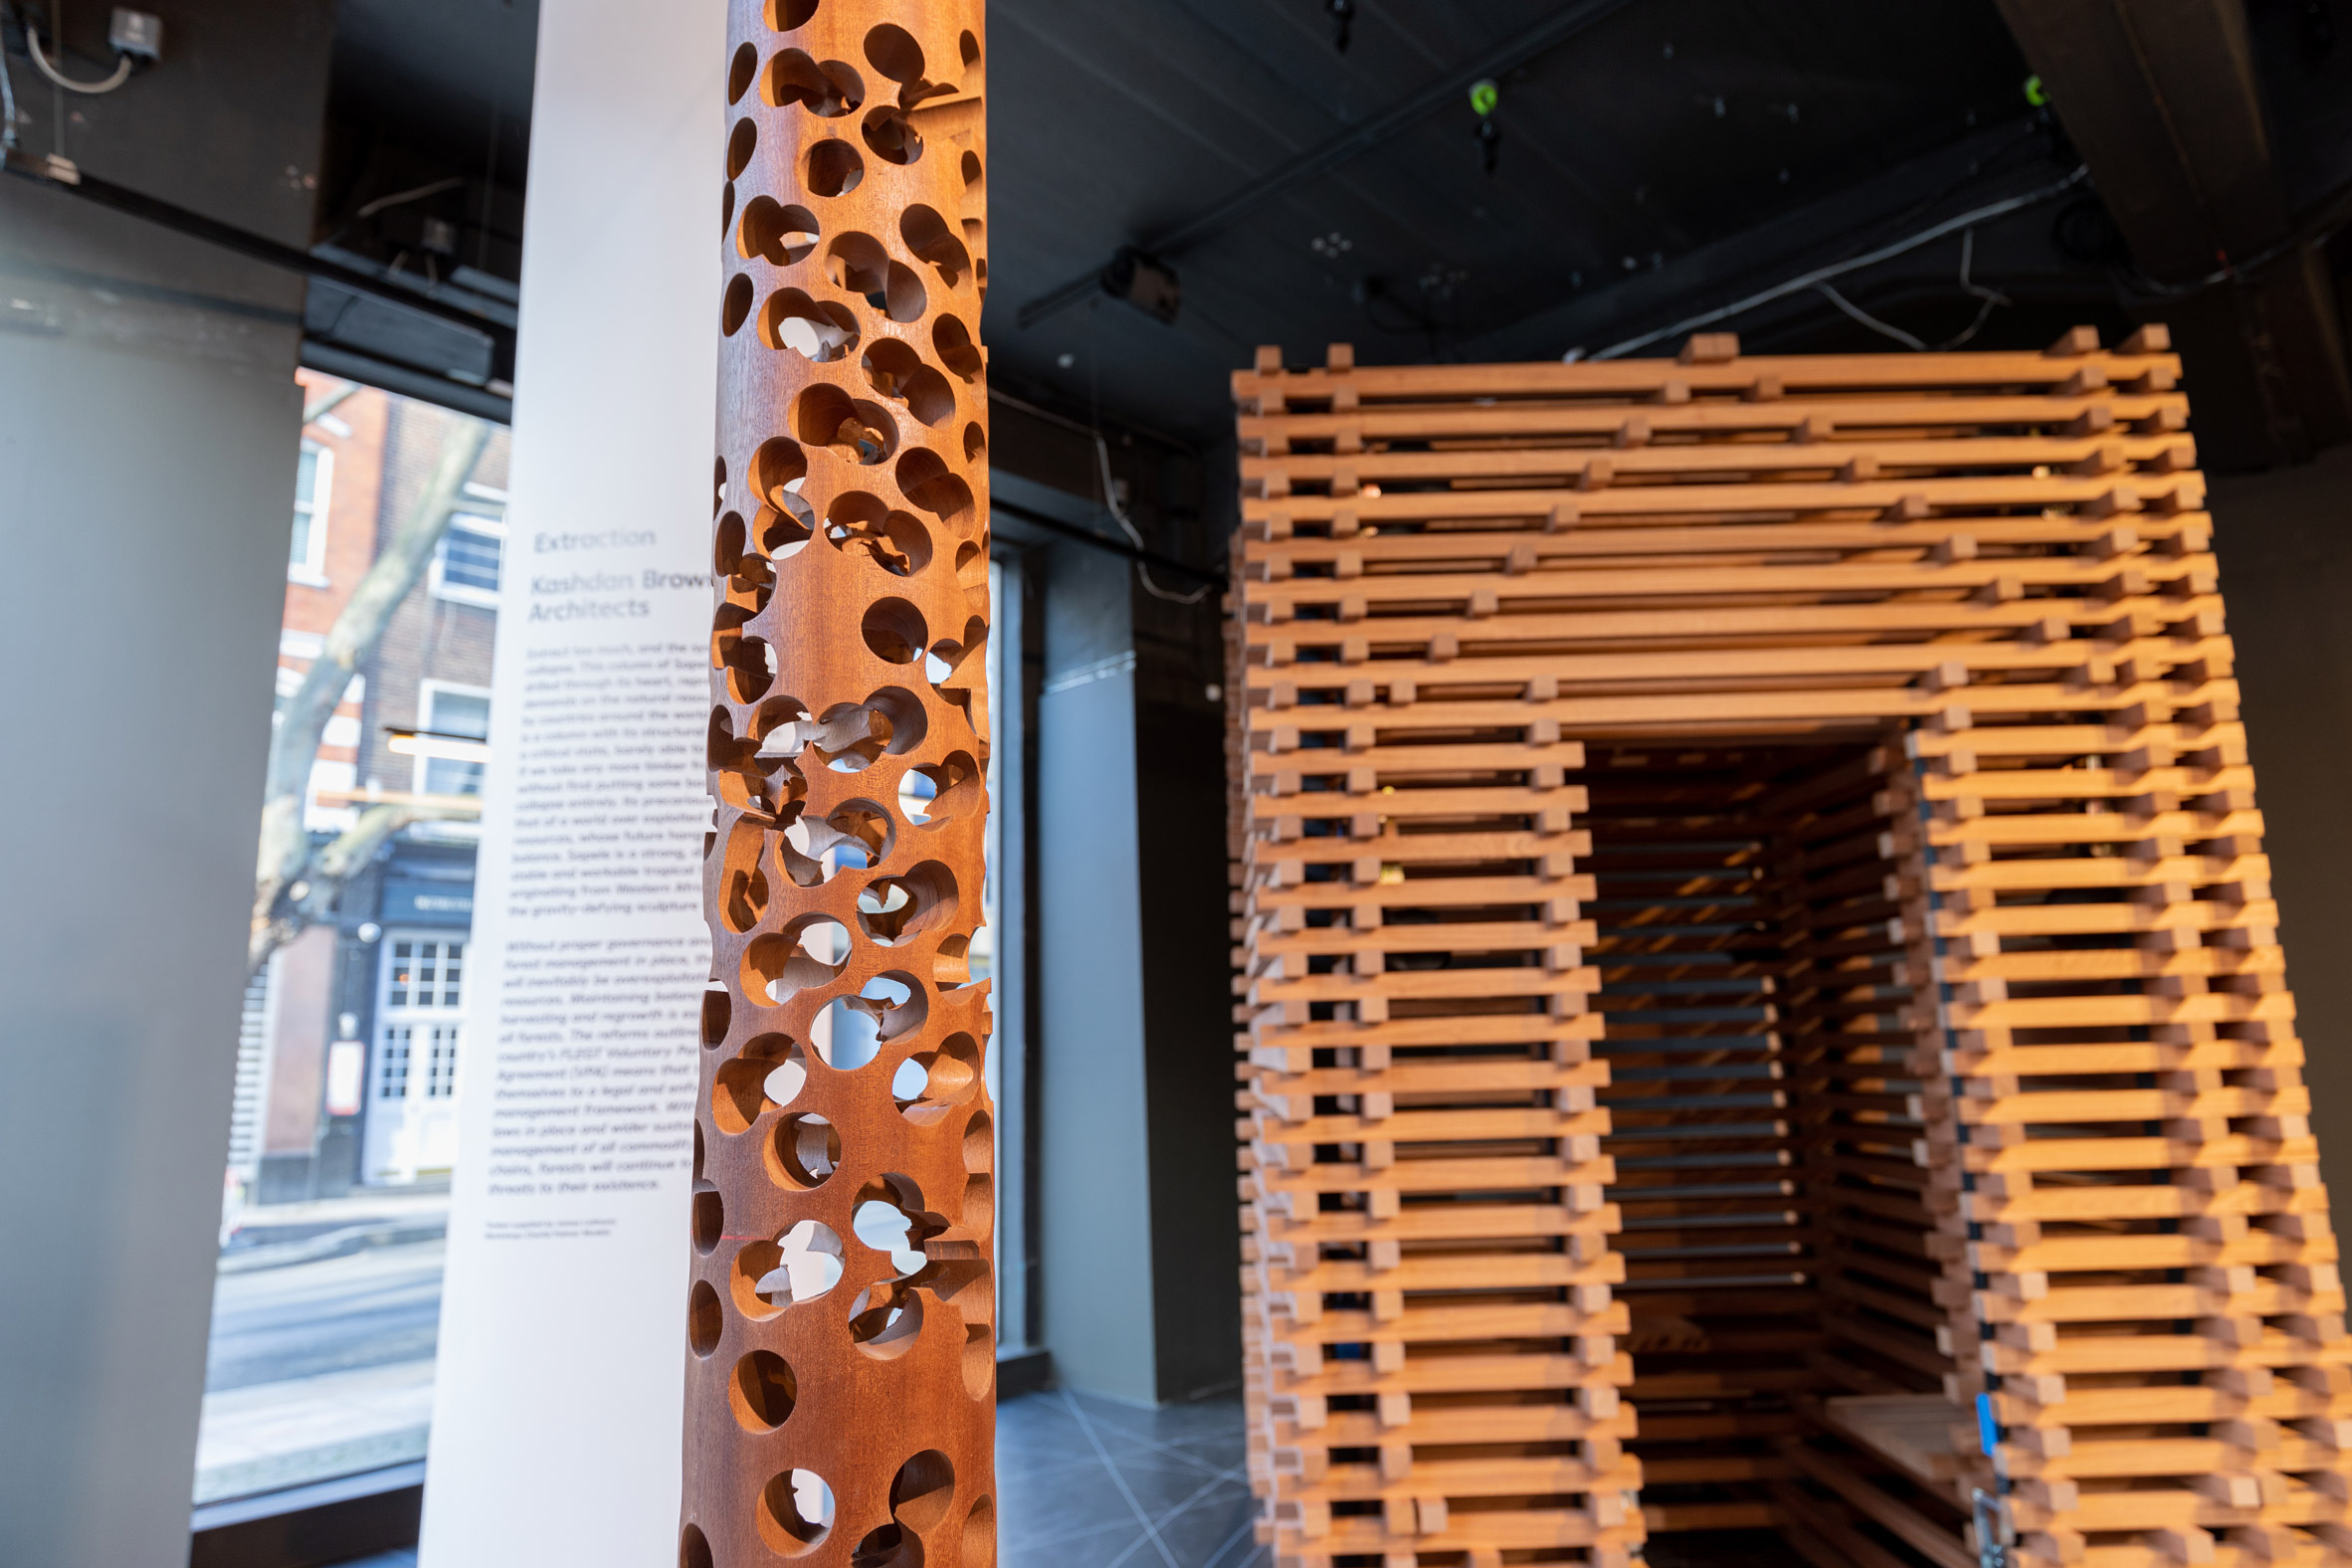 Extraction by Julia and Julian Kashdan-Brown and Sapele Sound Pavilion by Jeremy Yu and Tomos Owen from Conversations about Climate Change exhibition by the Timber Trade Federation